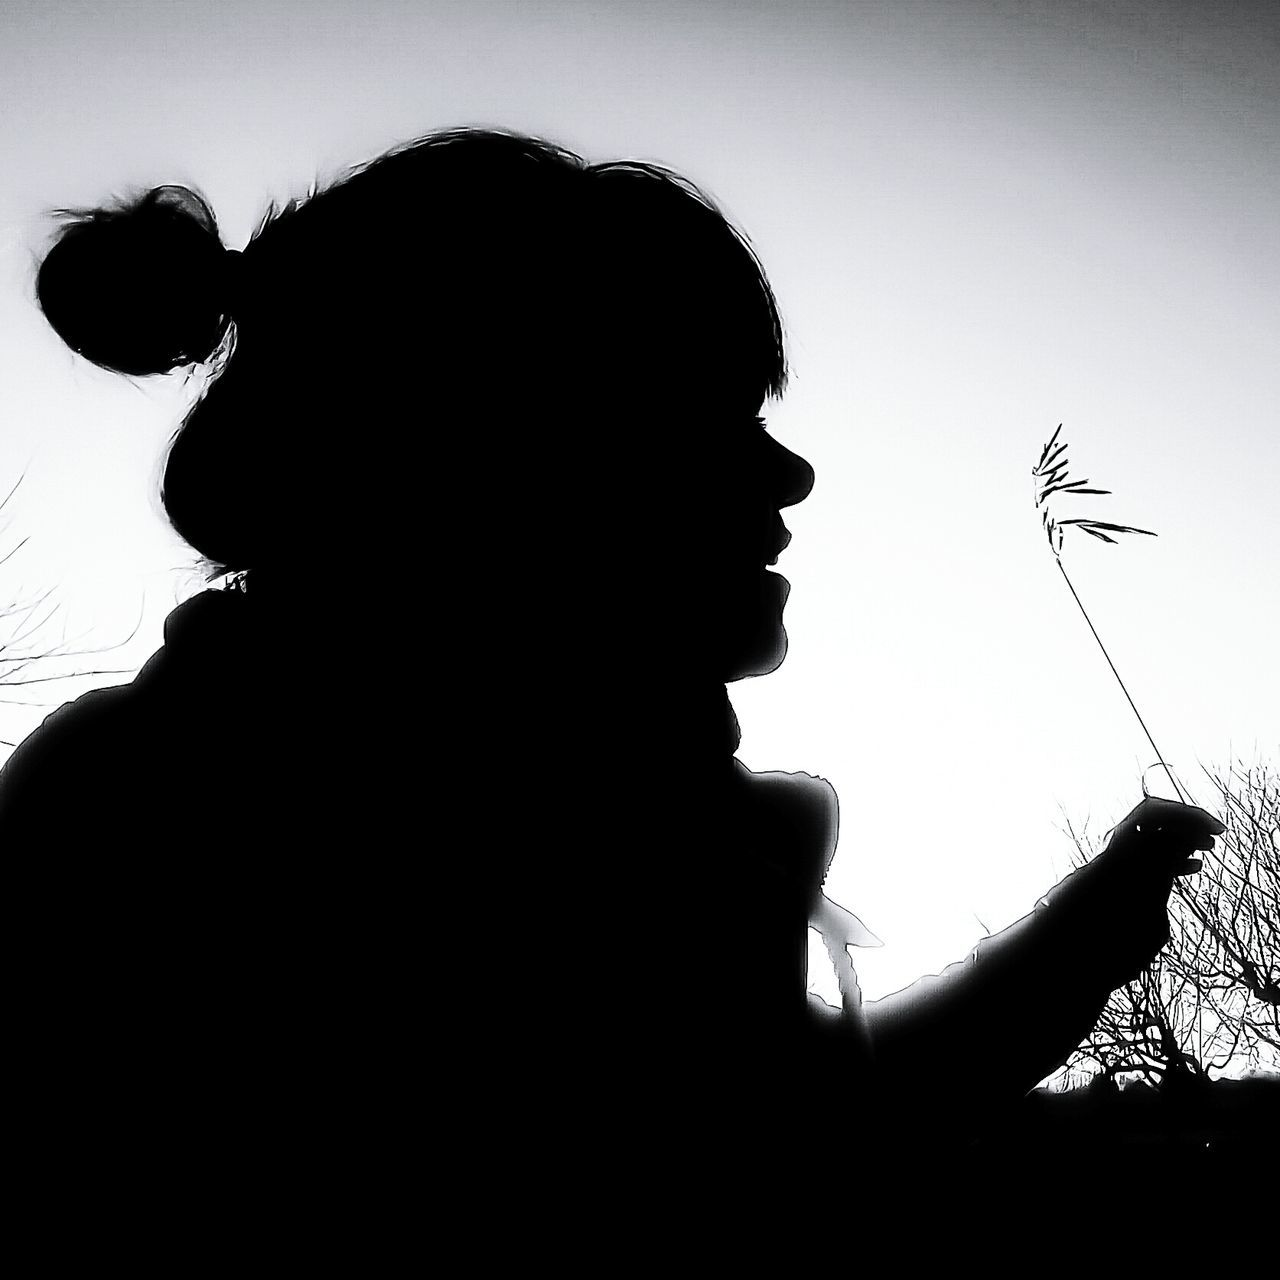 Silhouette Silhouette Photography Silhouettes Of People Silhouette Of A Woman Woman Woman Profile Profile Blackandwhite Black And White Outdoors Silhouette One Person Adults Only Filigran Minimalism Free Waiting For Spring Sunny Day EyeEm Best Shots - Black + White EyeEm Gallery Eyeemphotography EyeEm Bnw